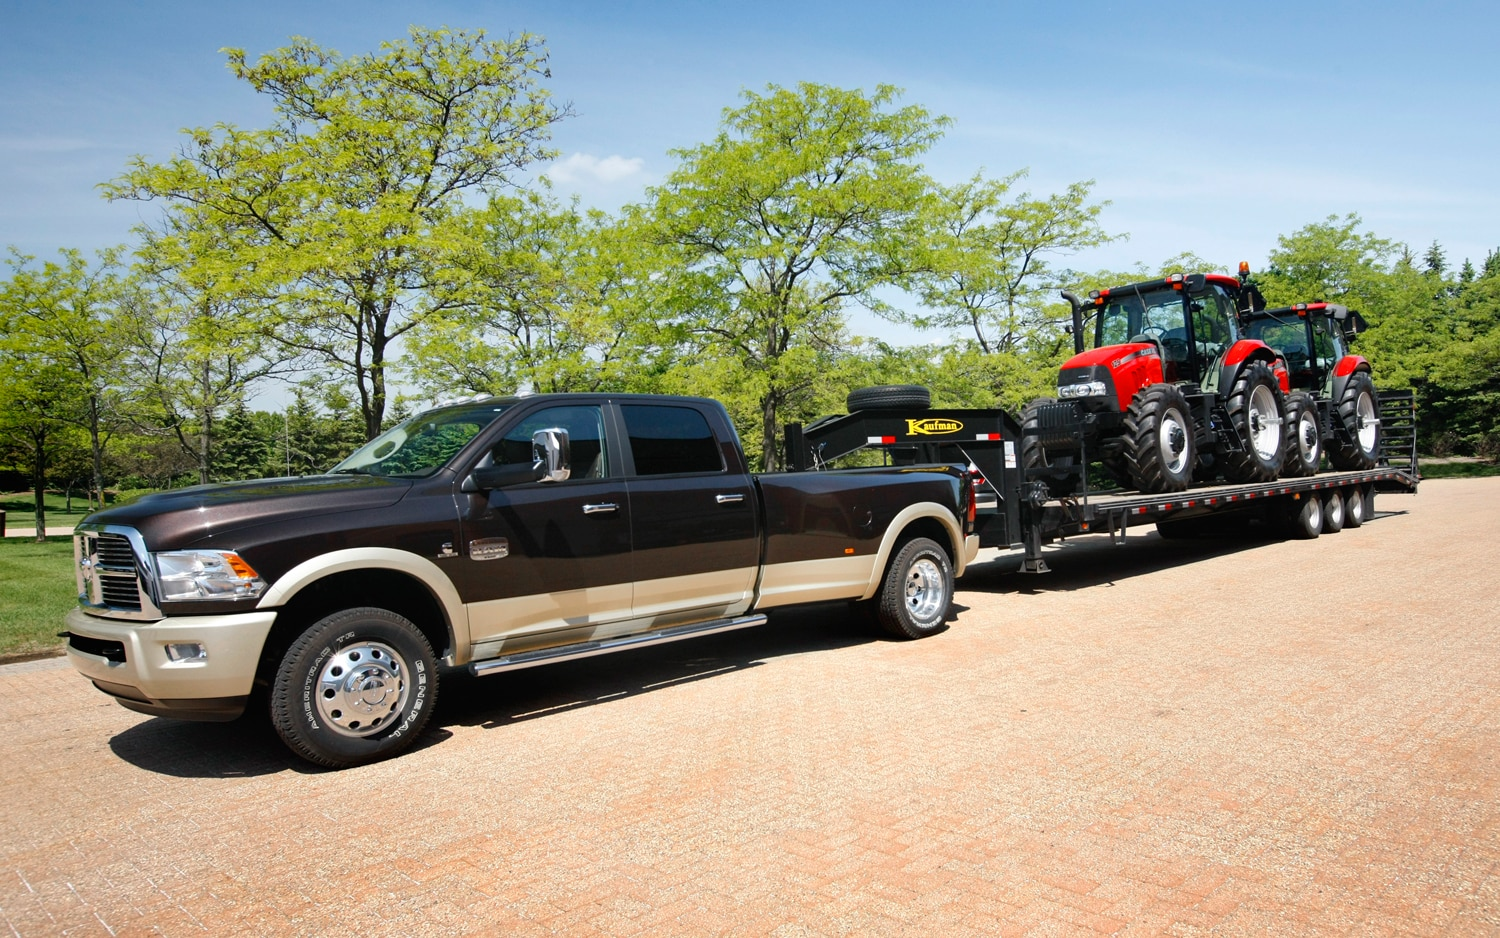 Ram Towing Capacity >> 2013 Ram 3500 Offers Class Leading 30 000 Lb Maximum Towing Capacity